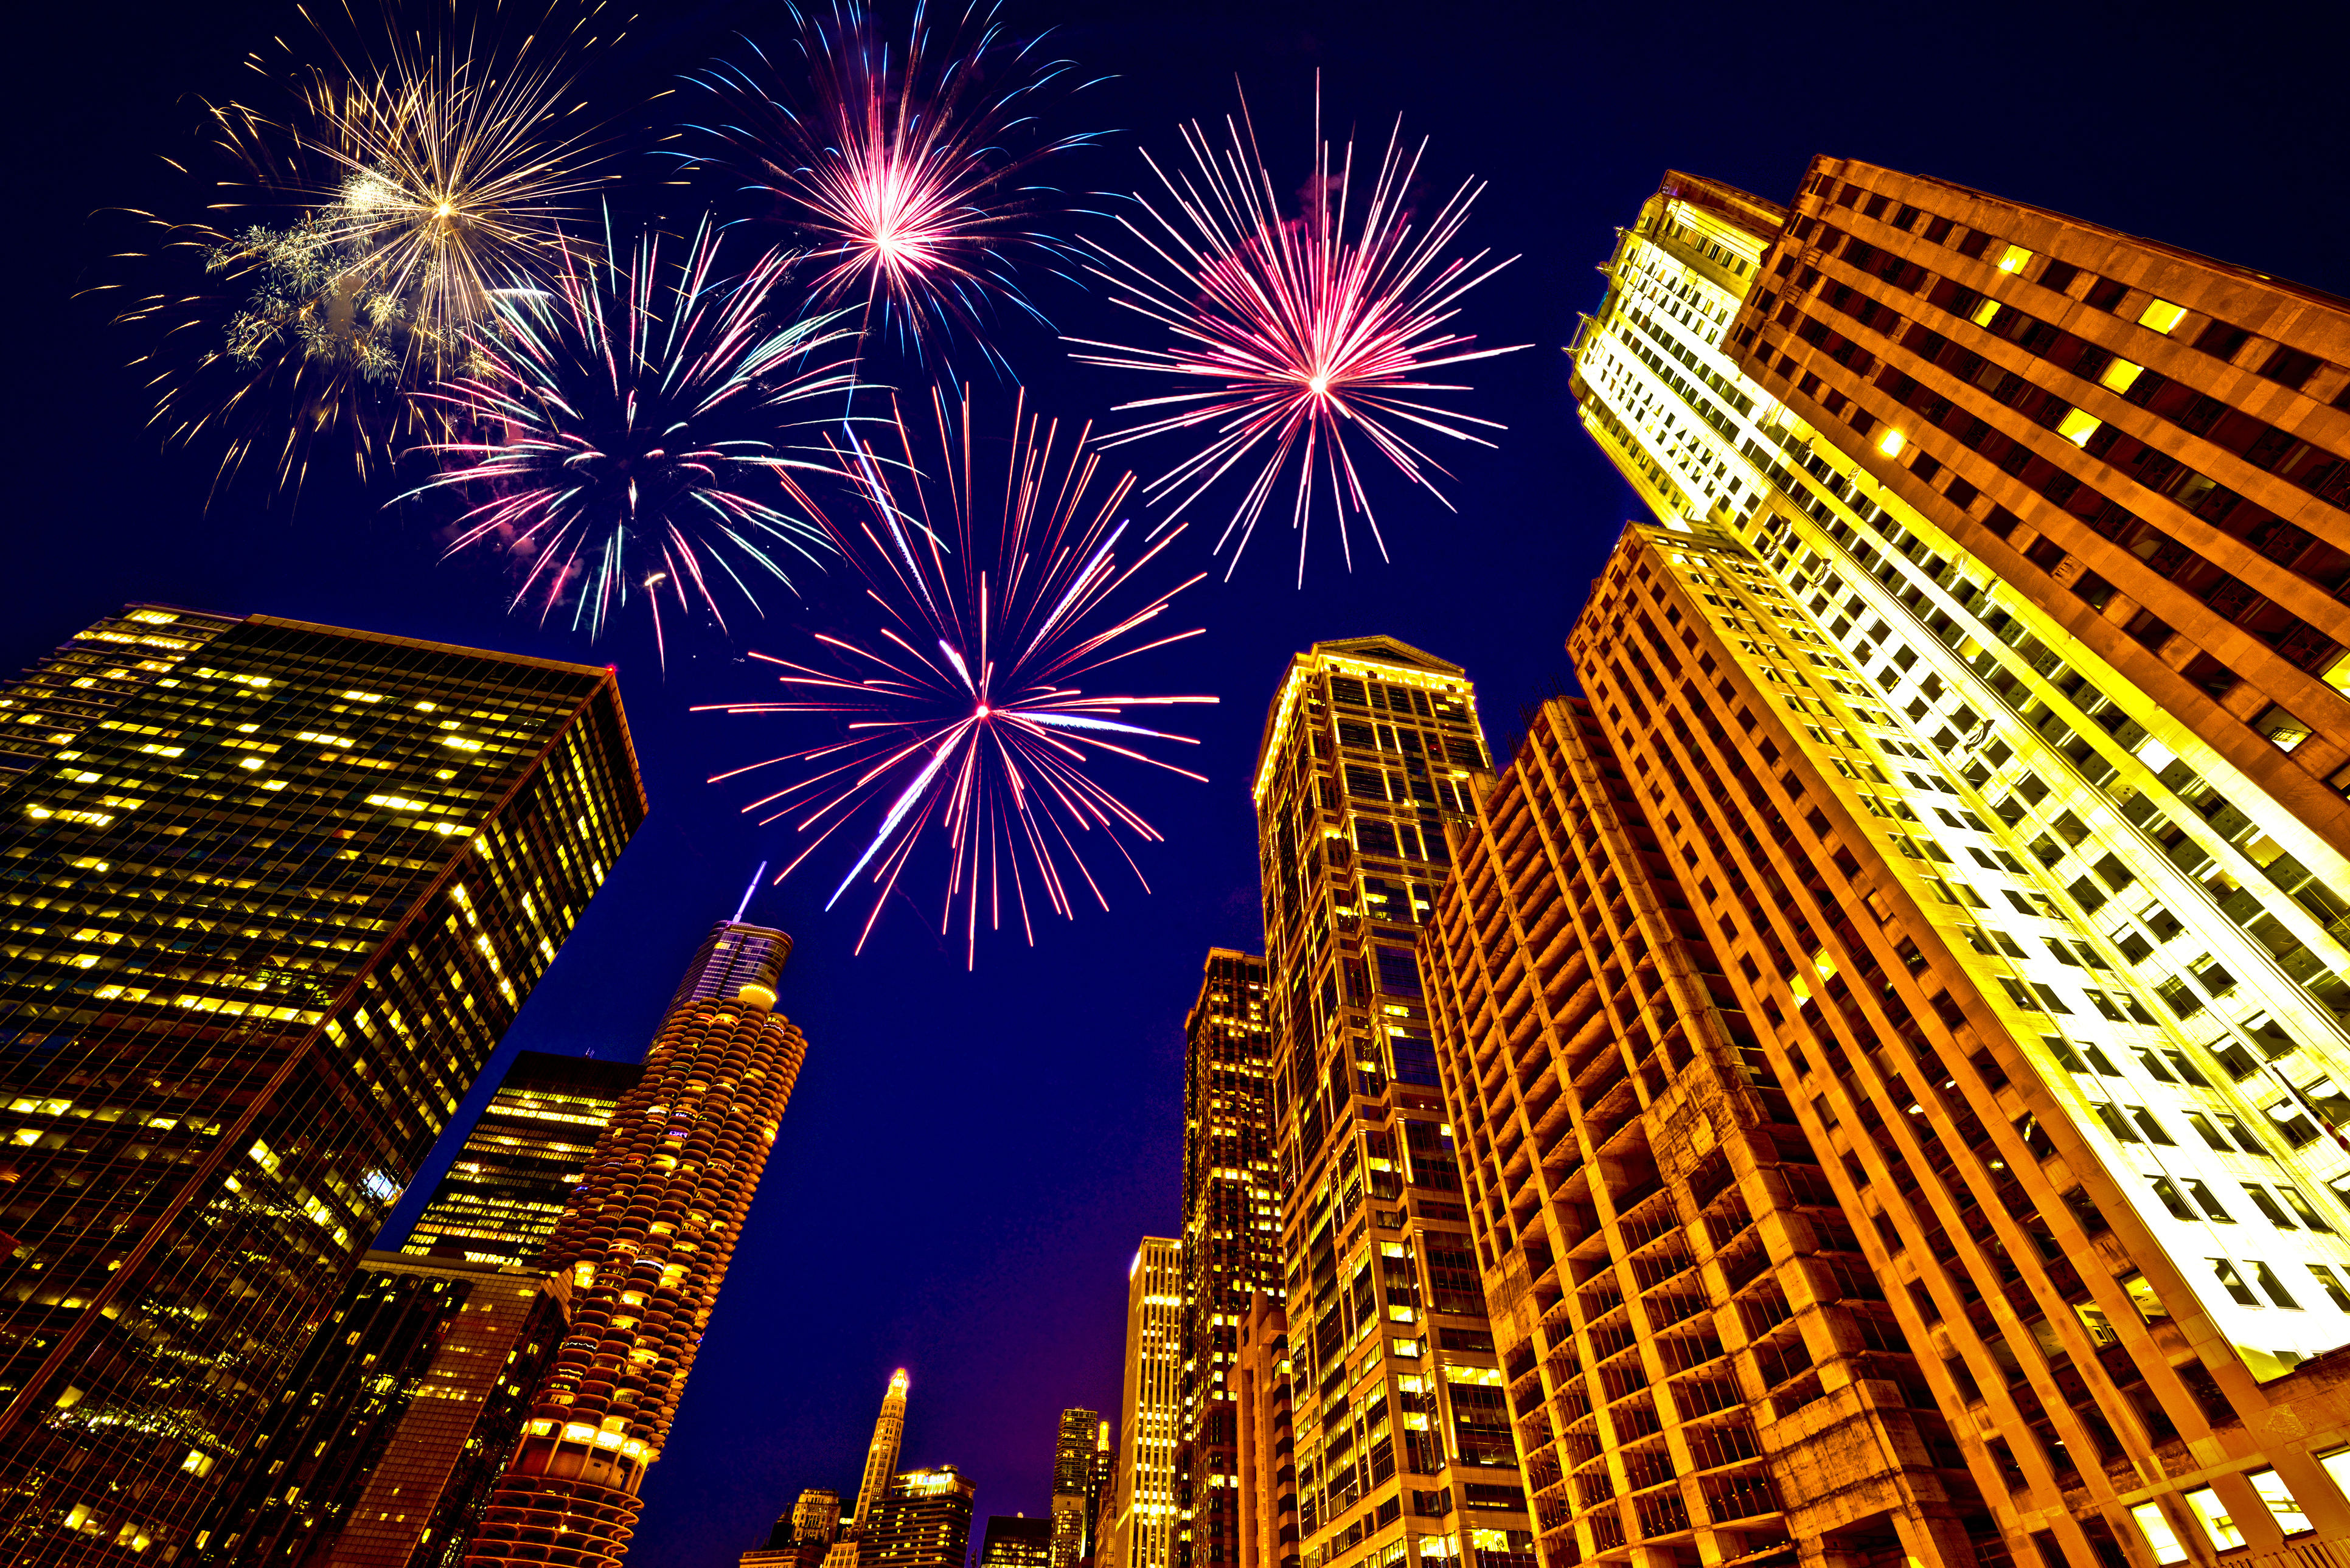 Fireworks over Chicago Illinois